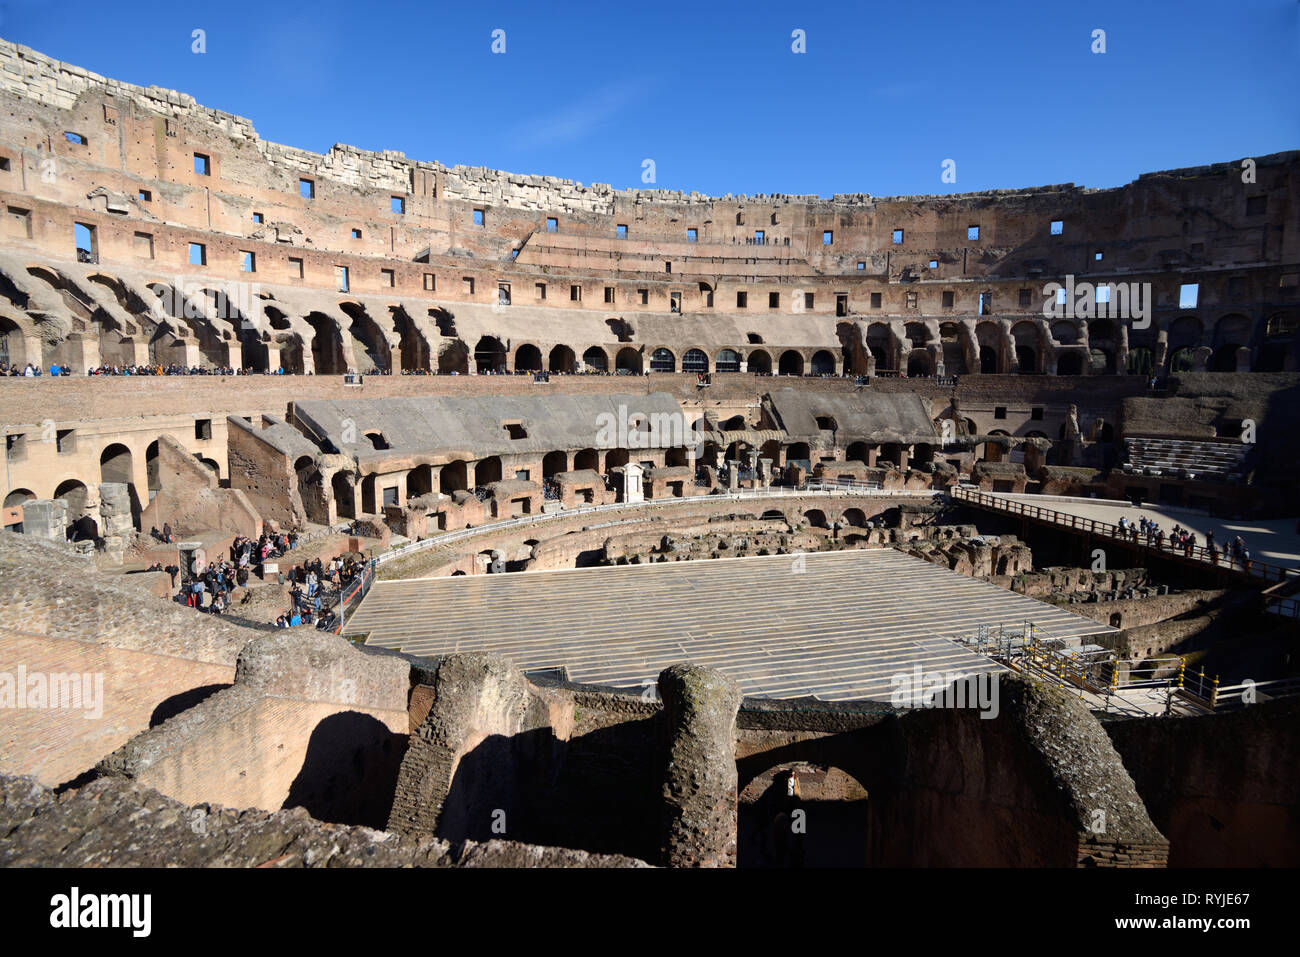 Interior or Inside of the Colosseum Amphitheatre, Coliseum, or Flavian Amphitheatre 70-80AD Rome Italy - Stock Image